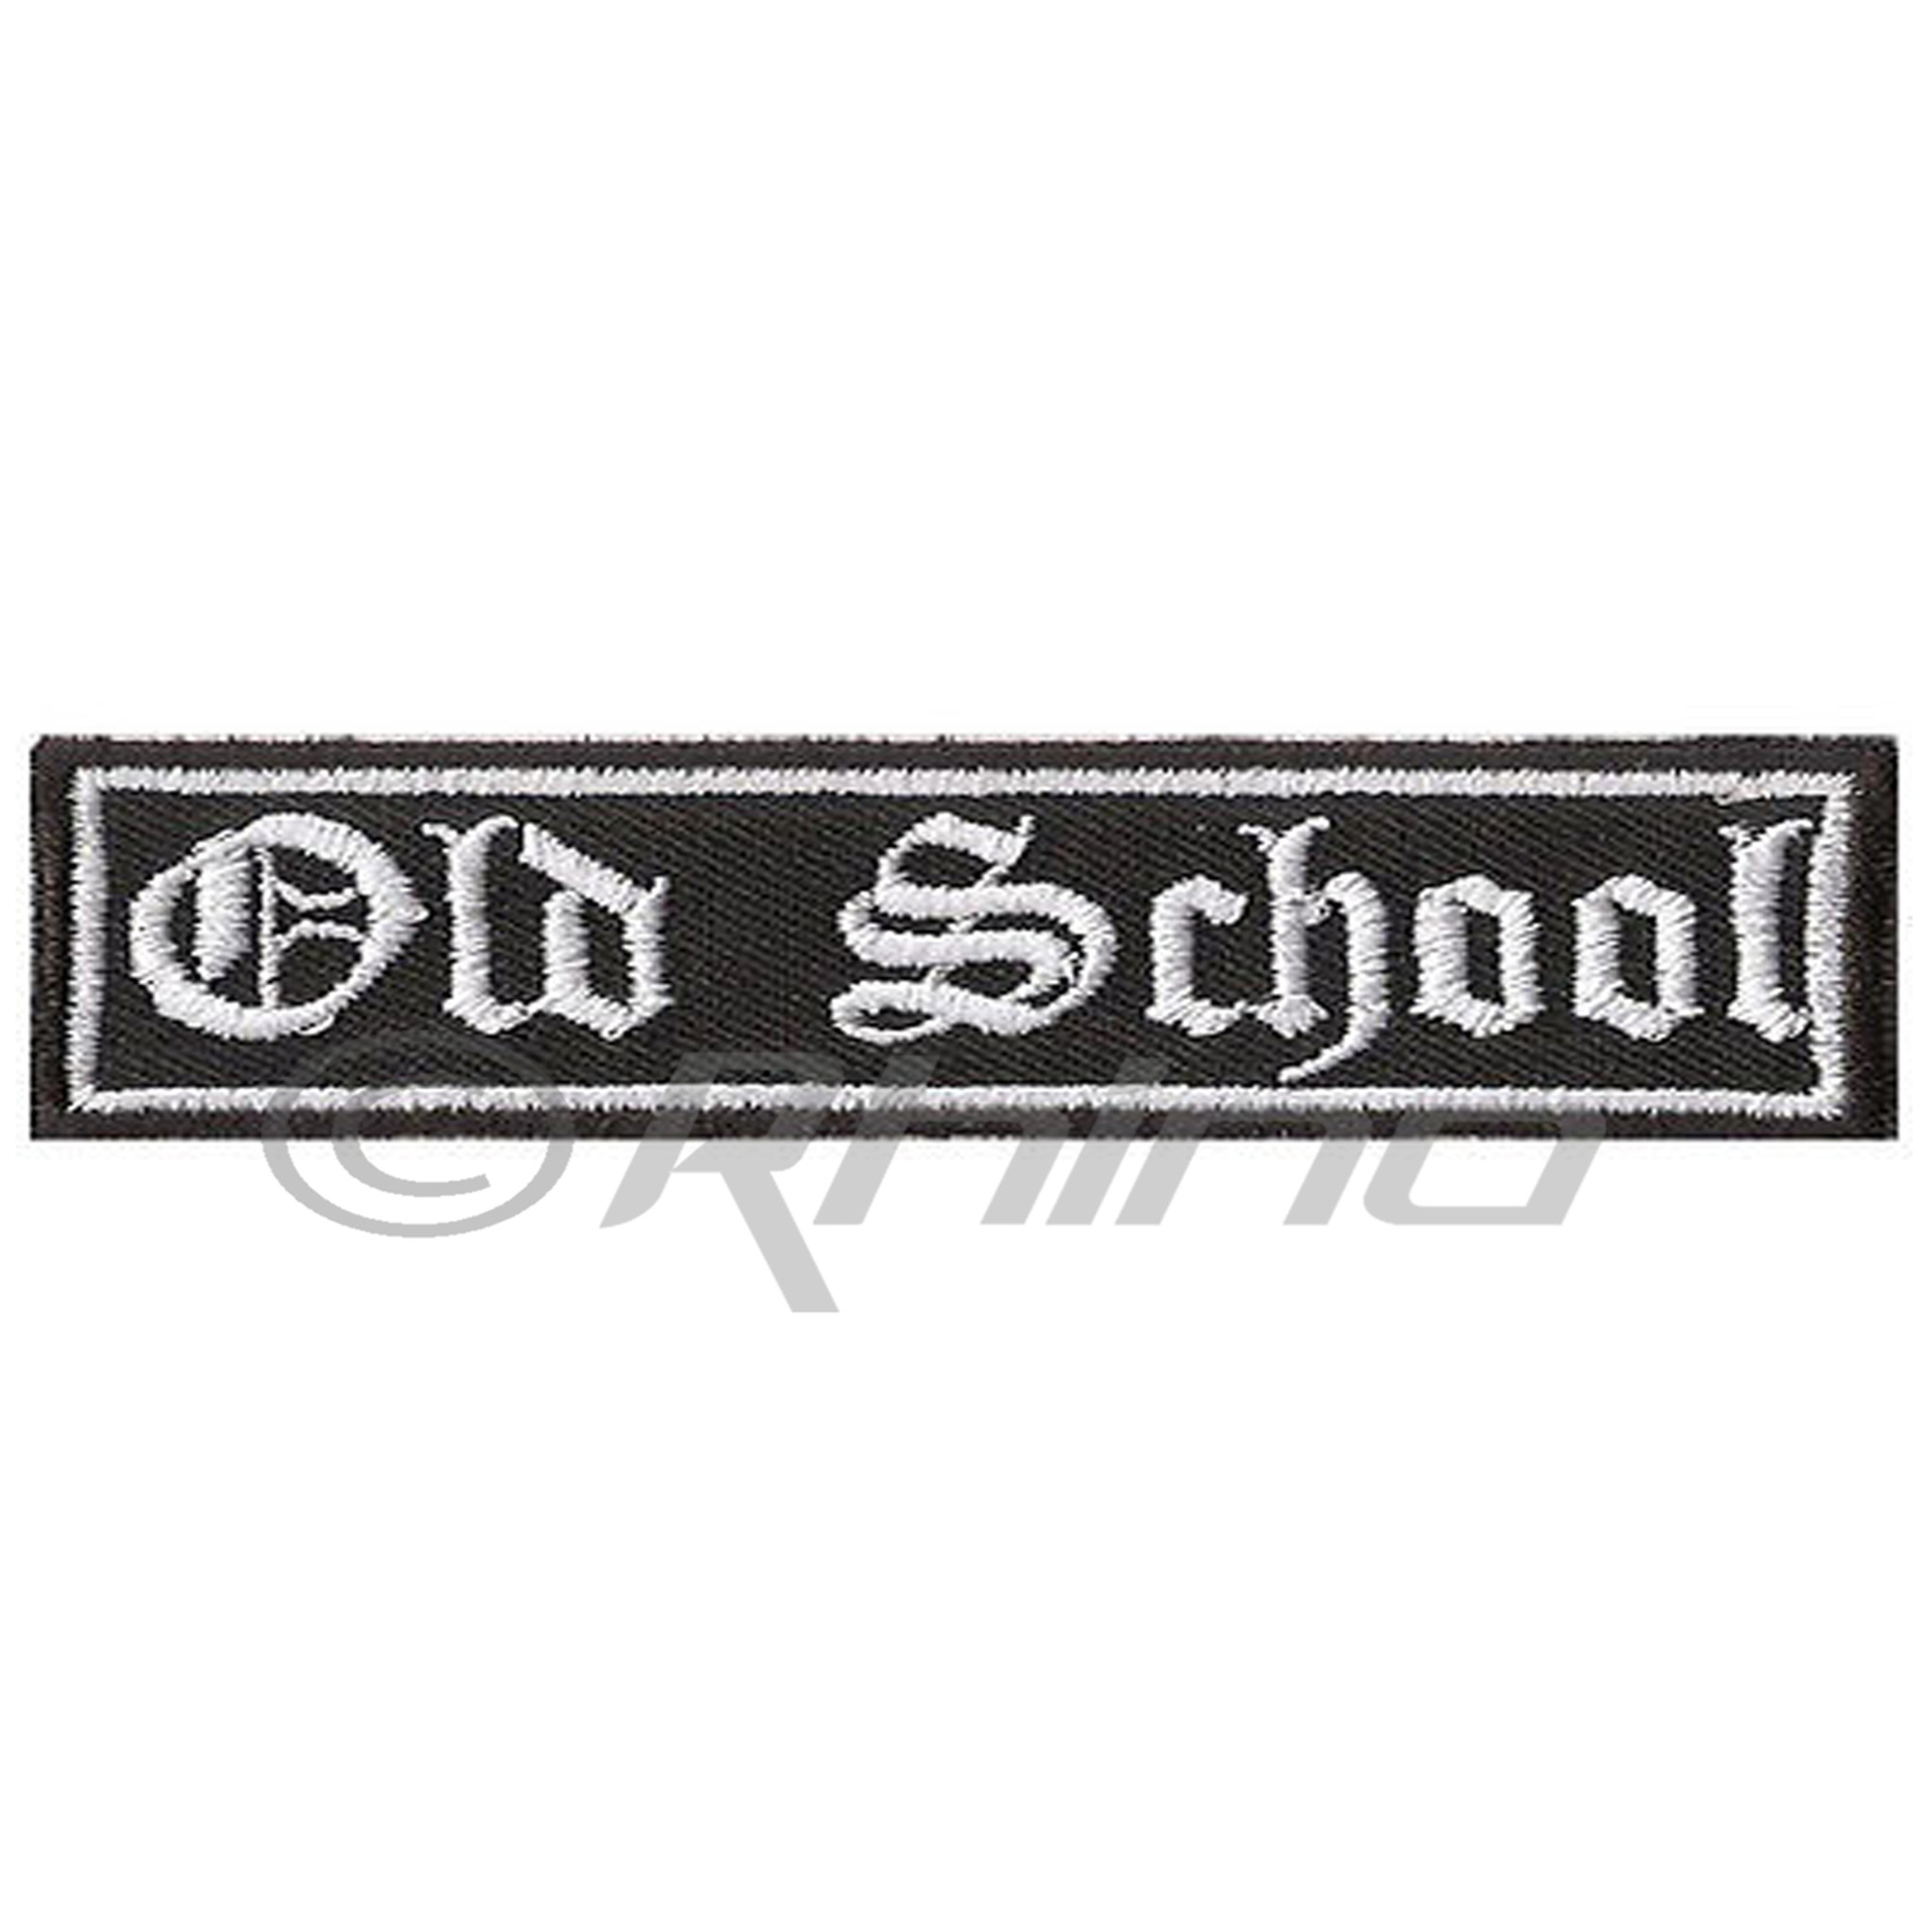 Old School Classic Patch